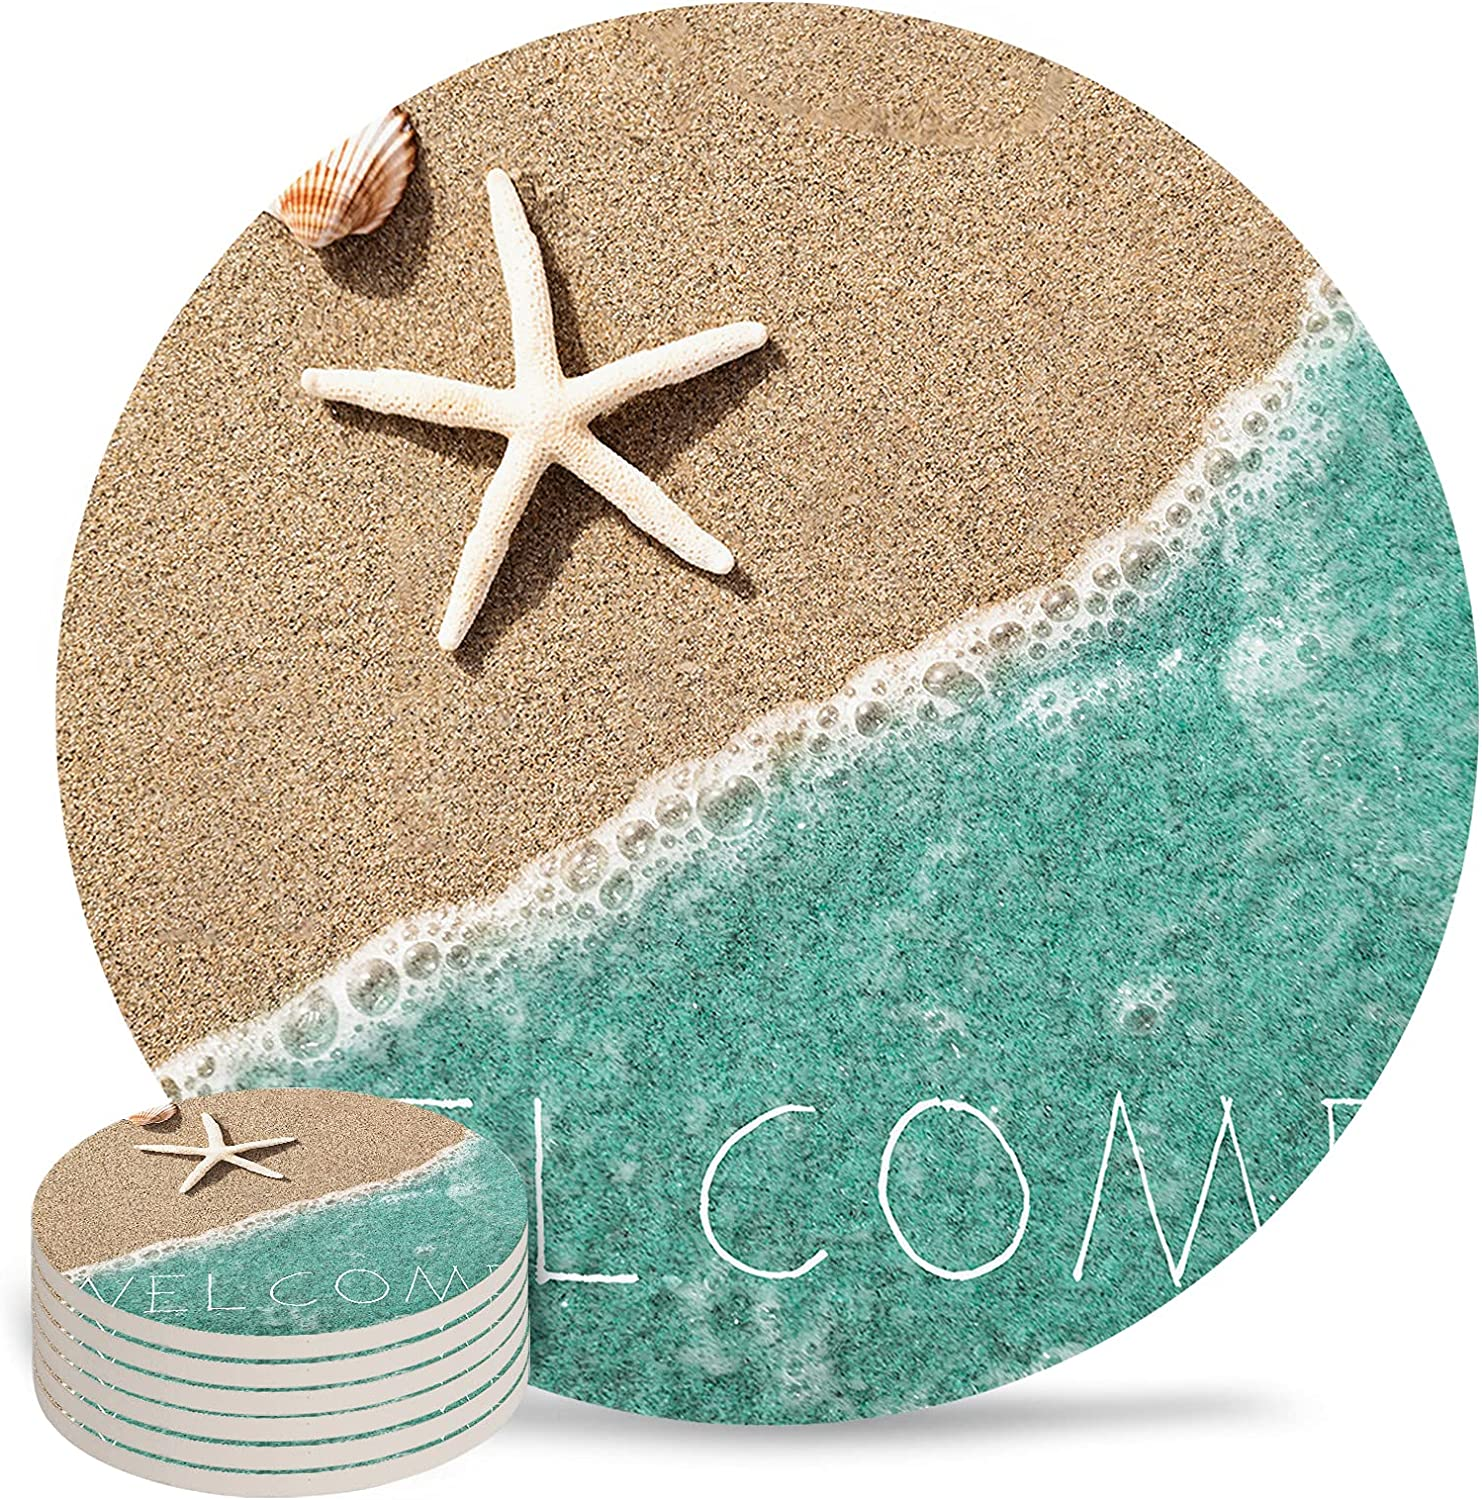 Ocean Coaster Max 54% OFF for 35% OFF Drinks 4 Inch Pad Co Ceramic Drink Absorbent